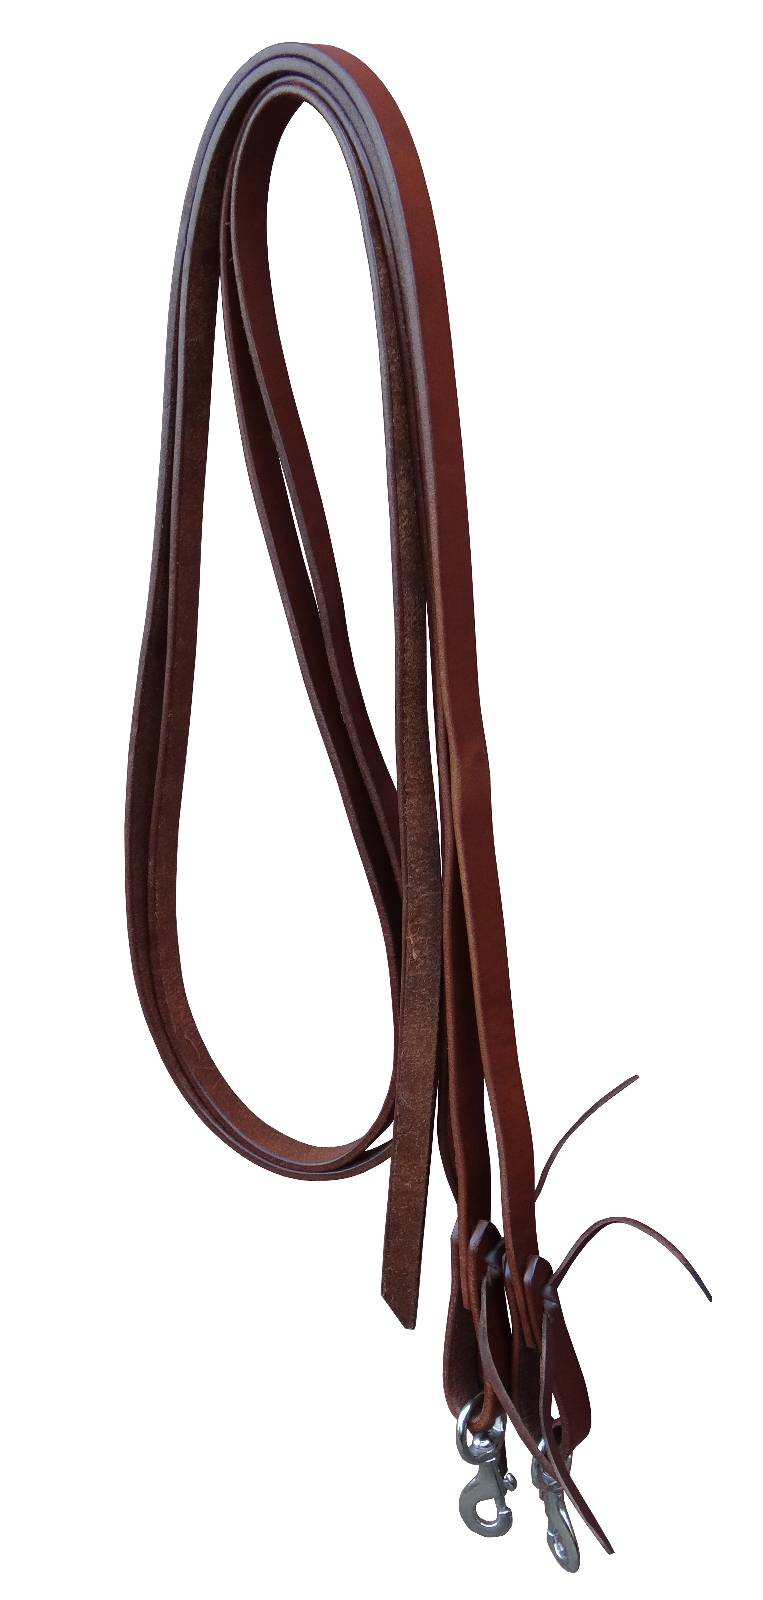 Turn-Two Harness Leather Split Reins - Snap End